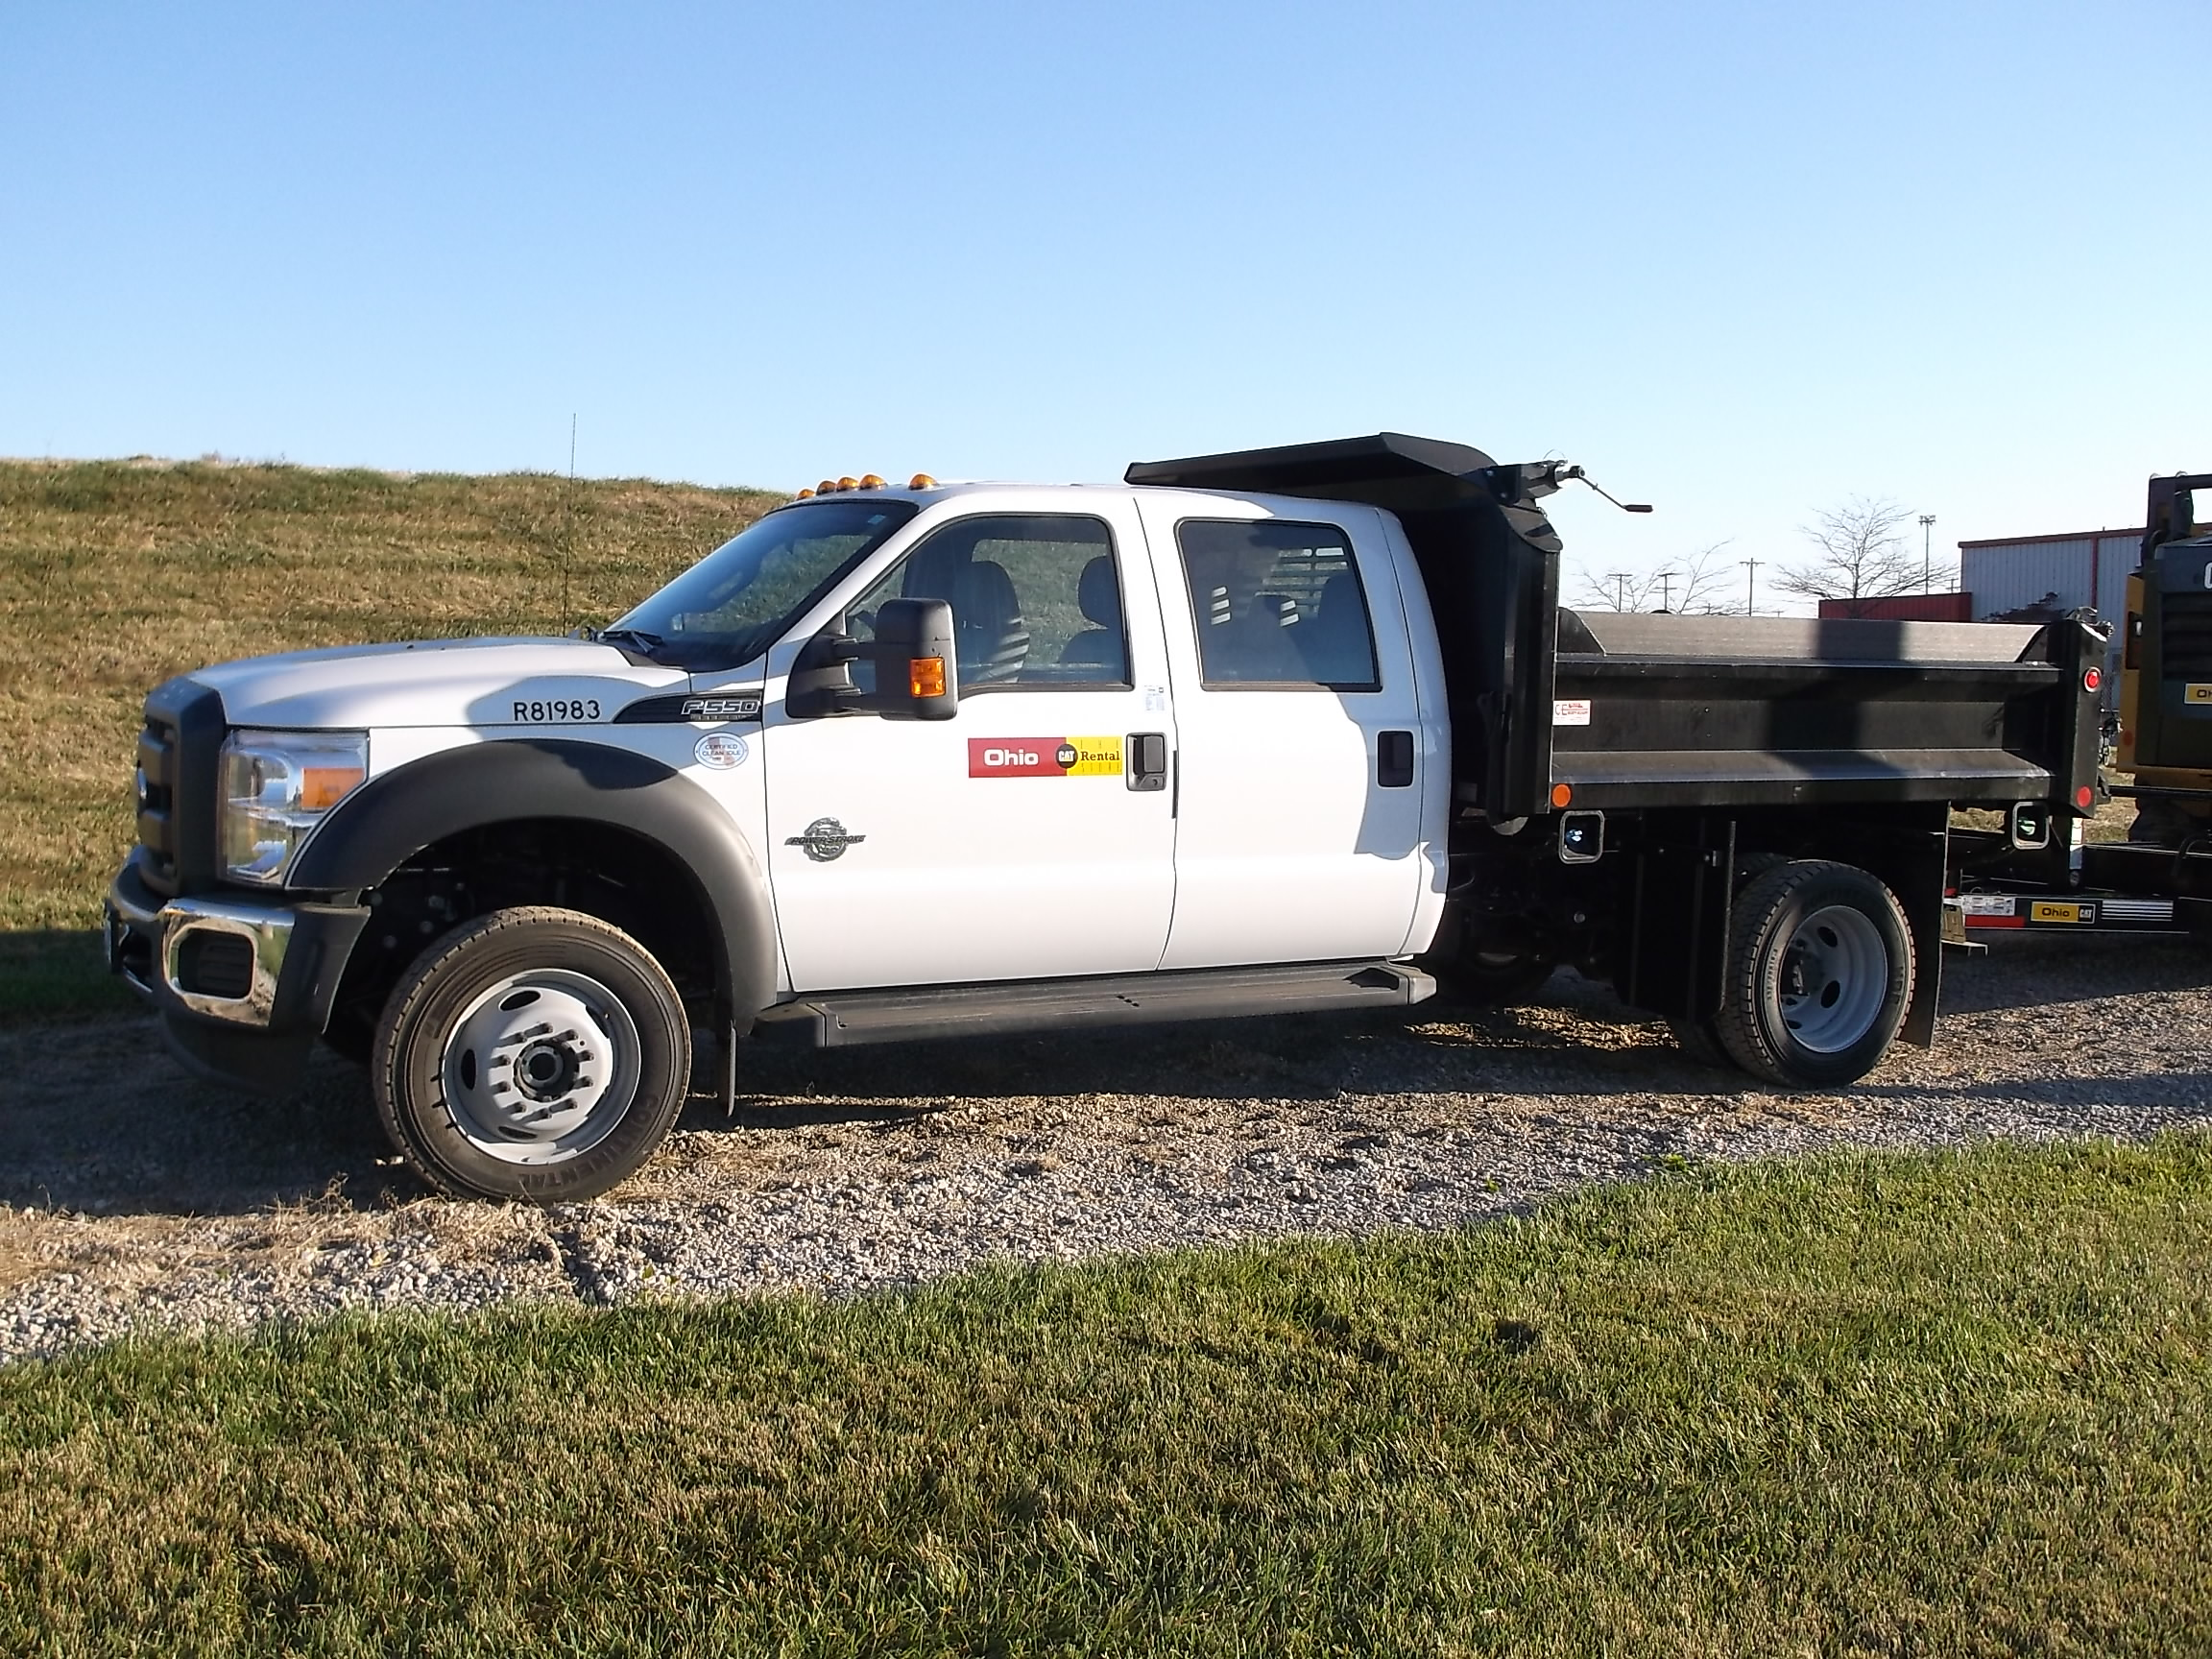 Picture of: 3 4 Yd Small Dump Truck Ohio Cat Rental Store